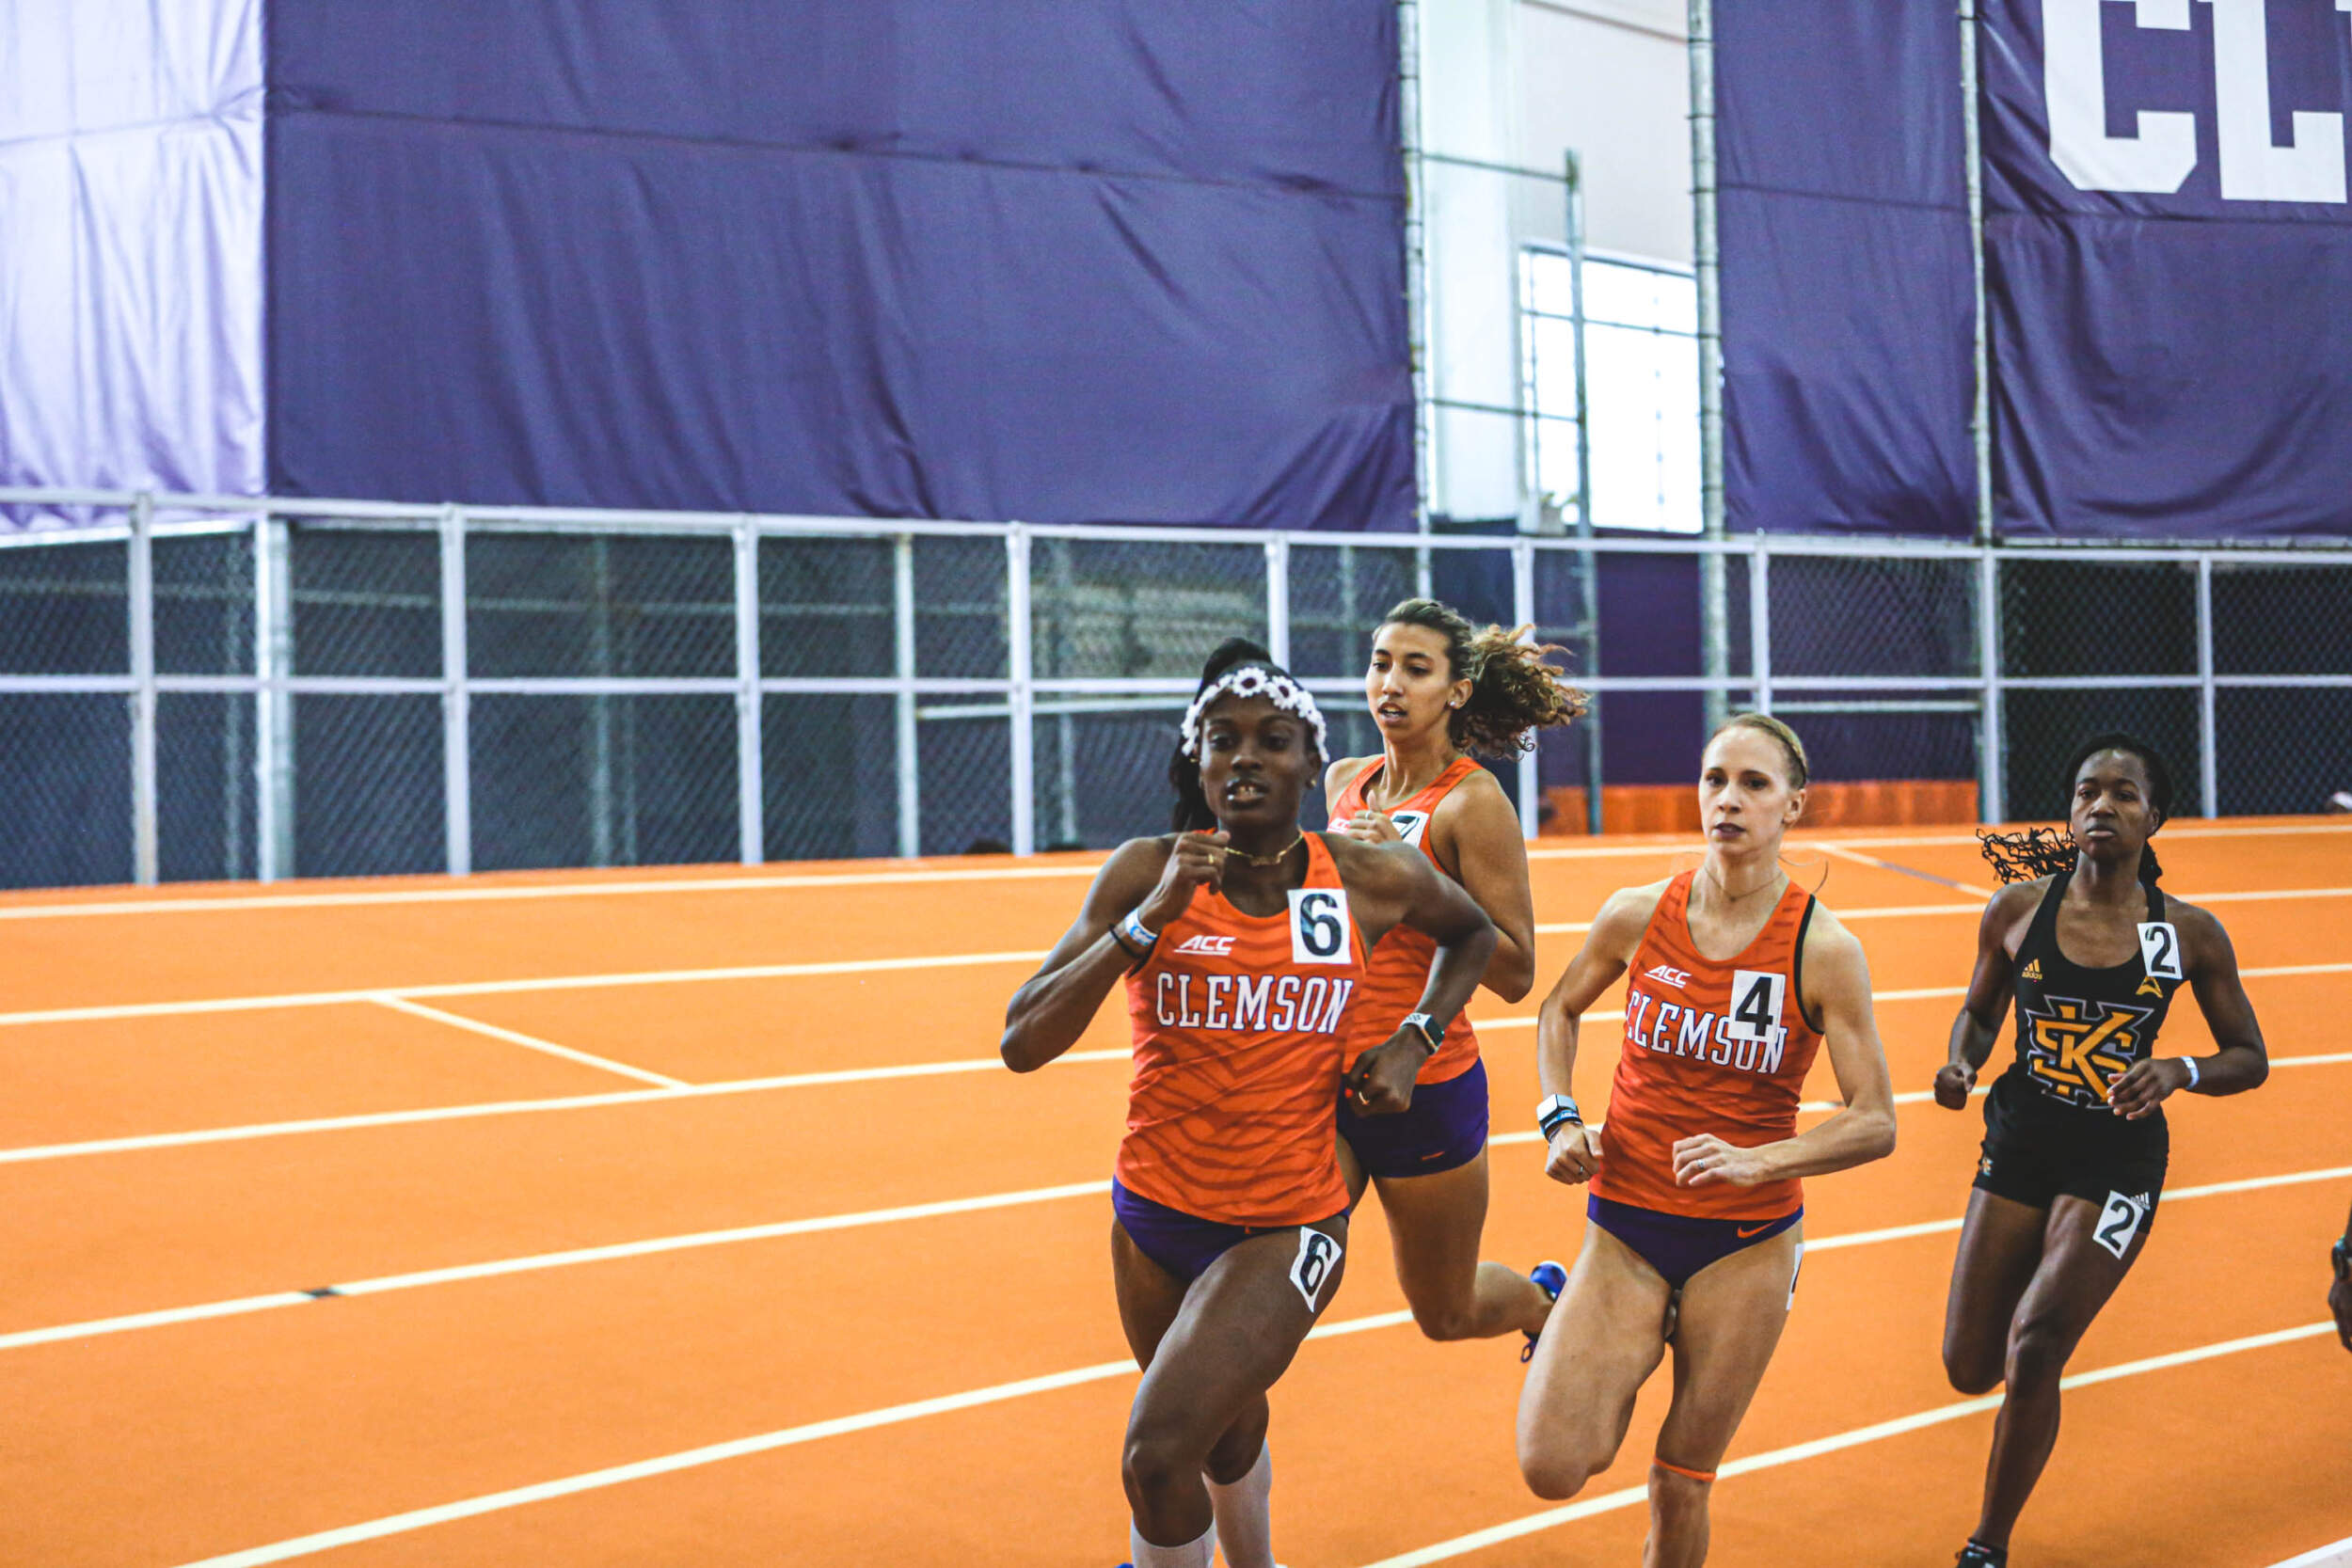 Tigers Showcase Depth and Quality at Clemson Opener